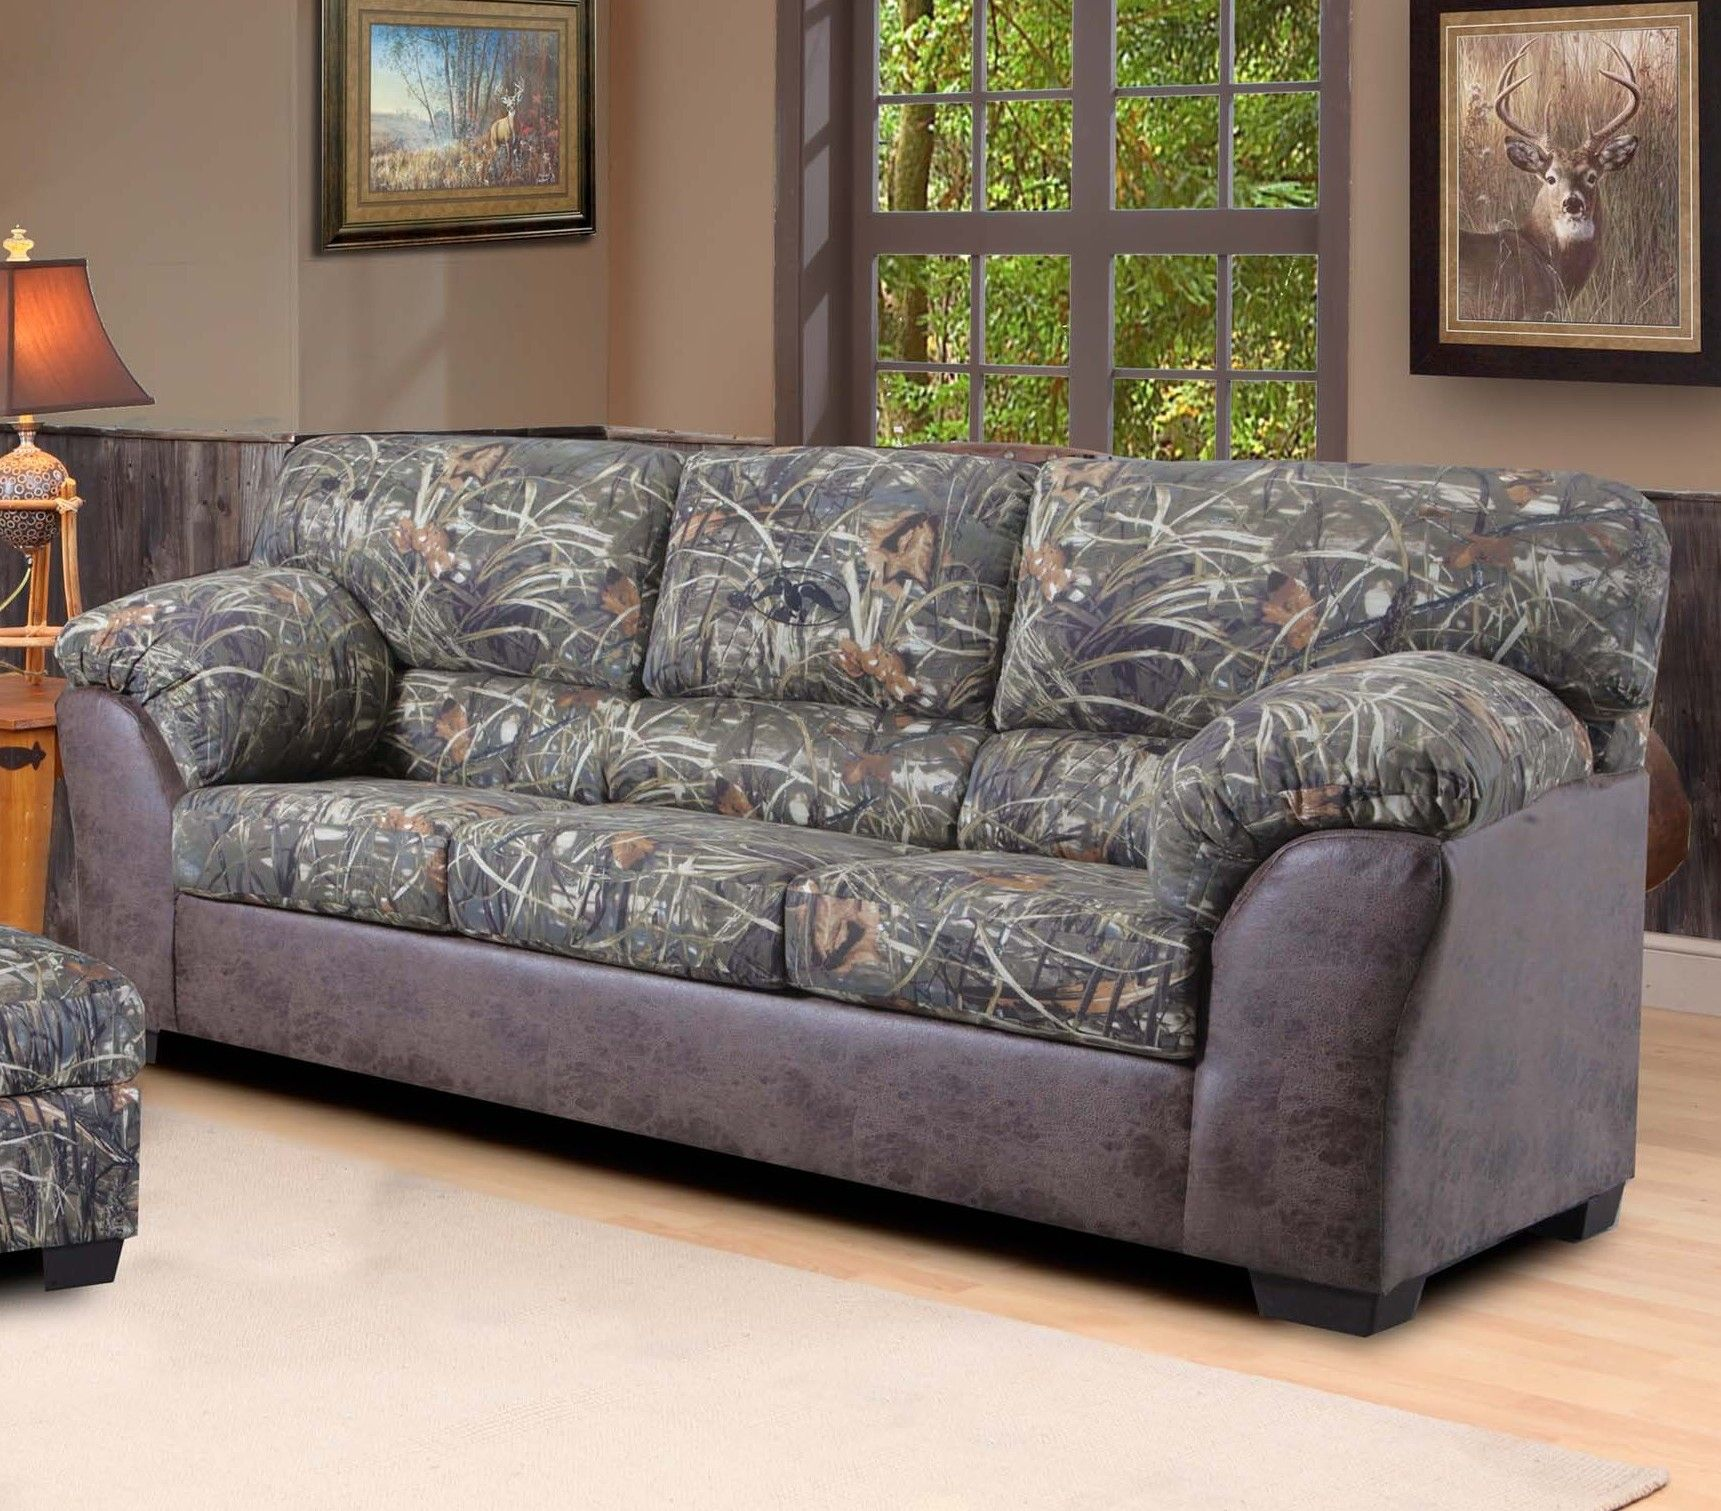 Duck Commander Sofa in Camouflage Fabric - The Duck ...